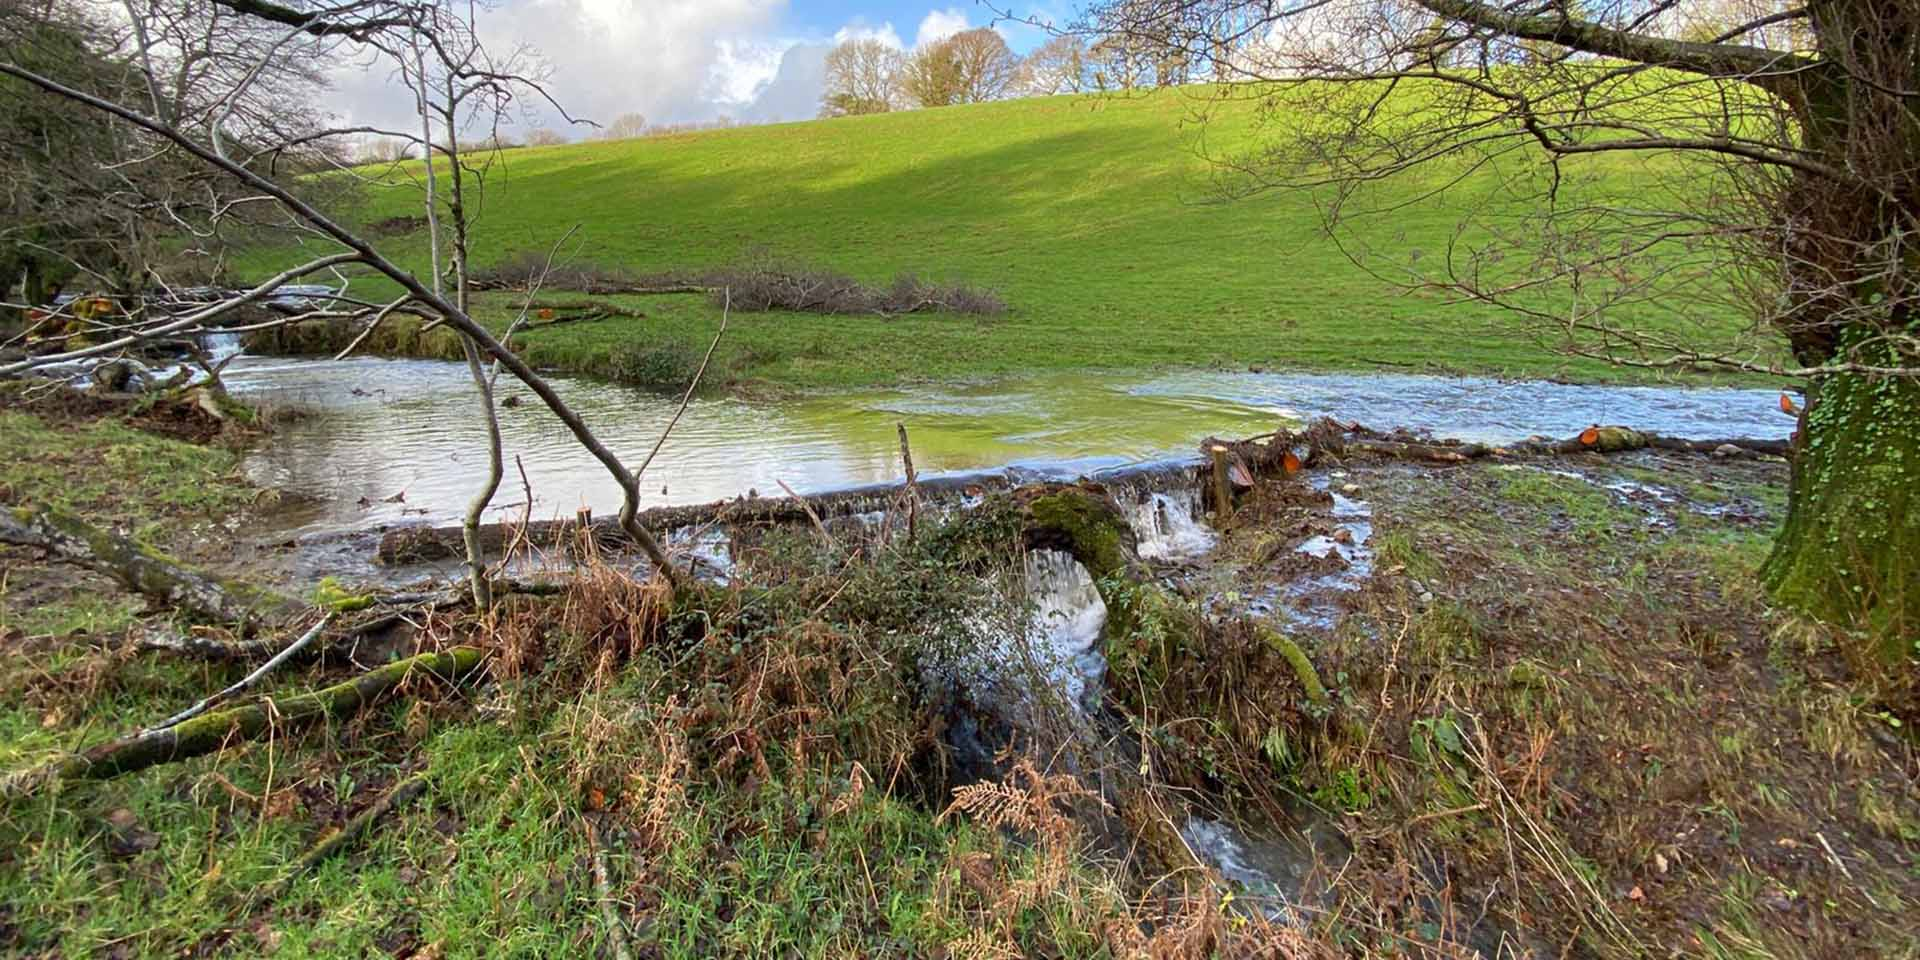 Woody debris dam encouraging water to reconnect with floodplain